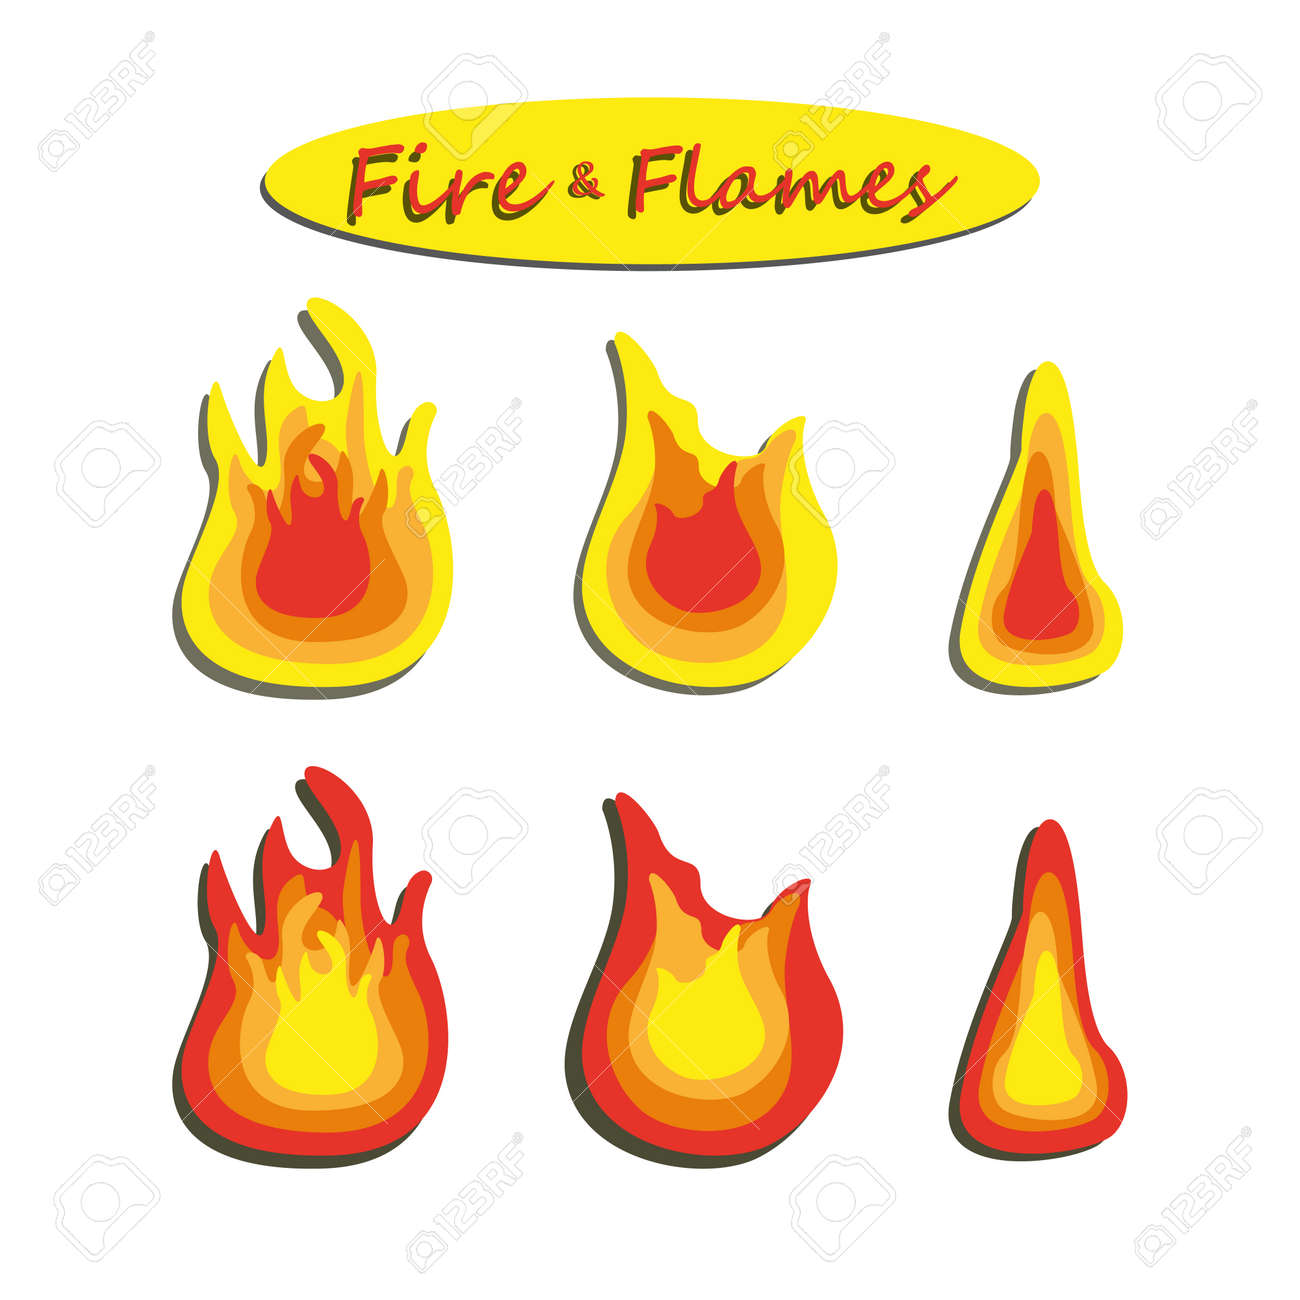 Flames icon over white background vector illustration. Set of fire flame icons isolated on white background. Energy concept. - 168496661